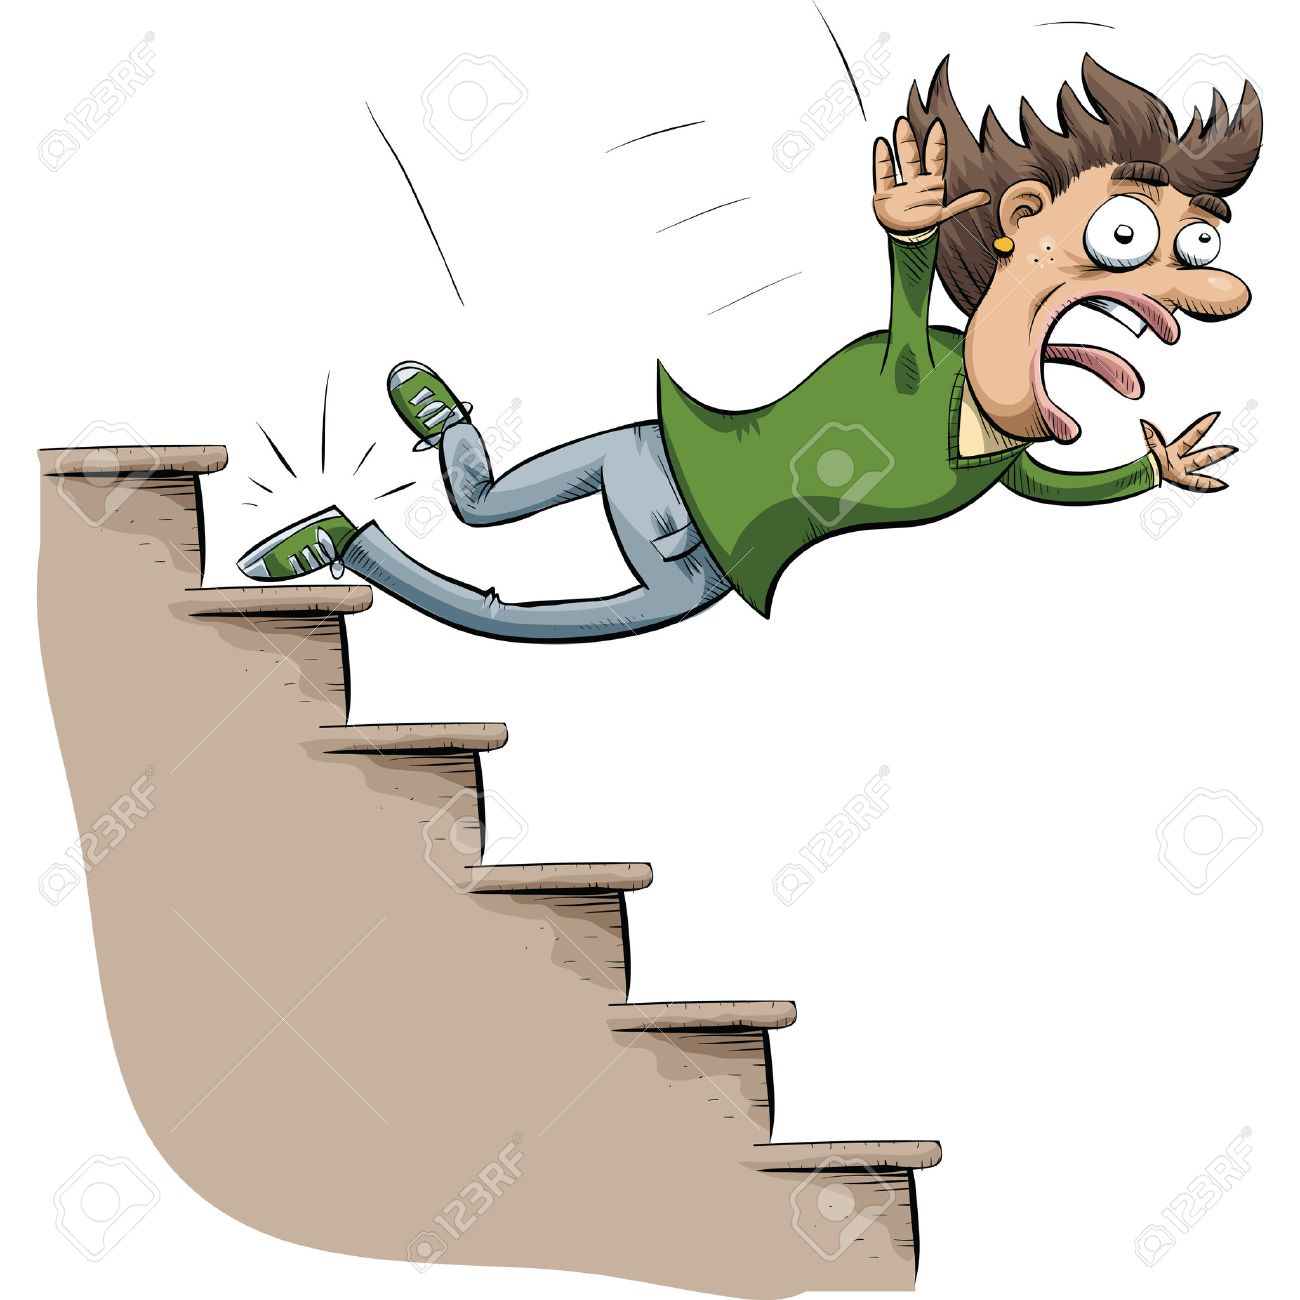 hight resolution of a cartoon woman trips and falls down stairs illustration